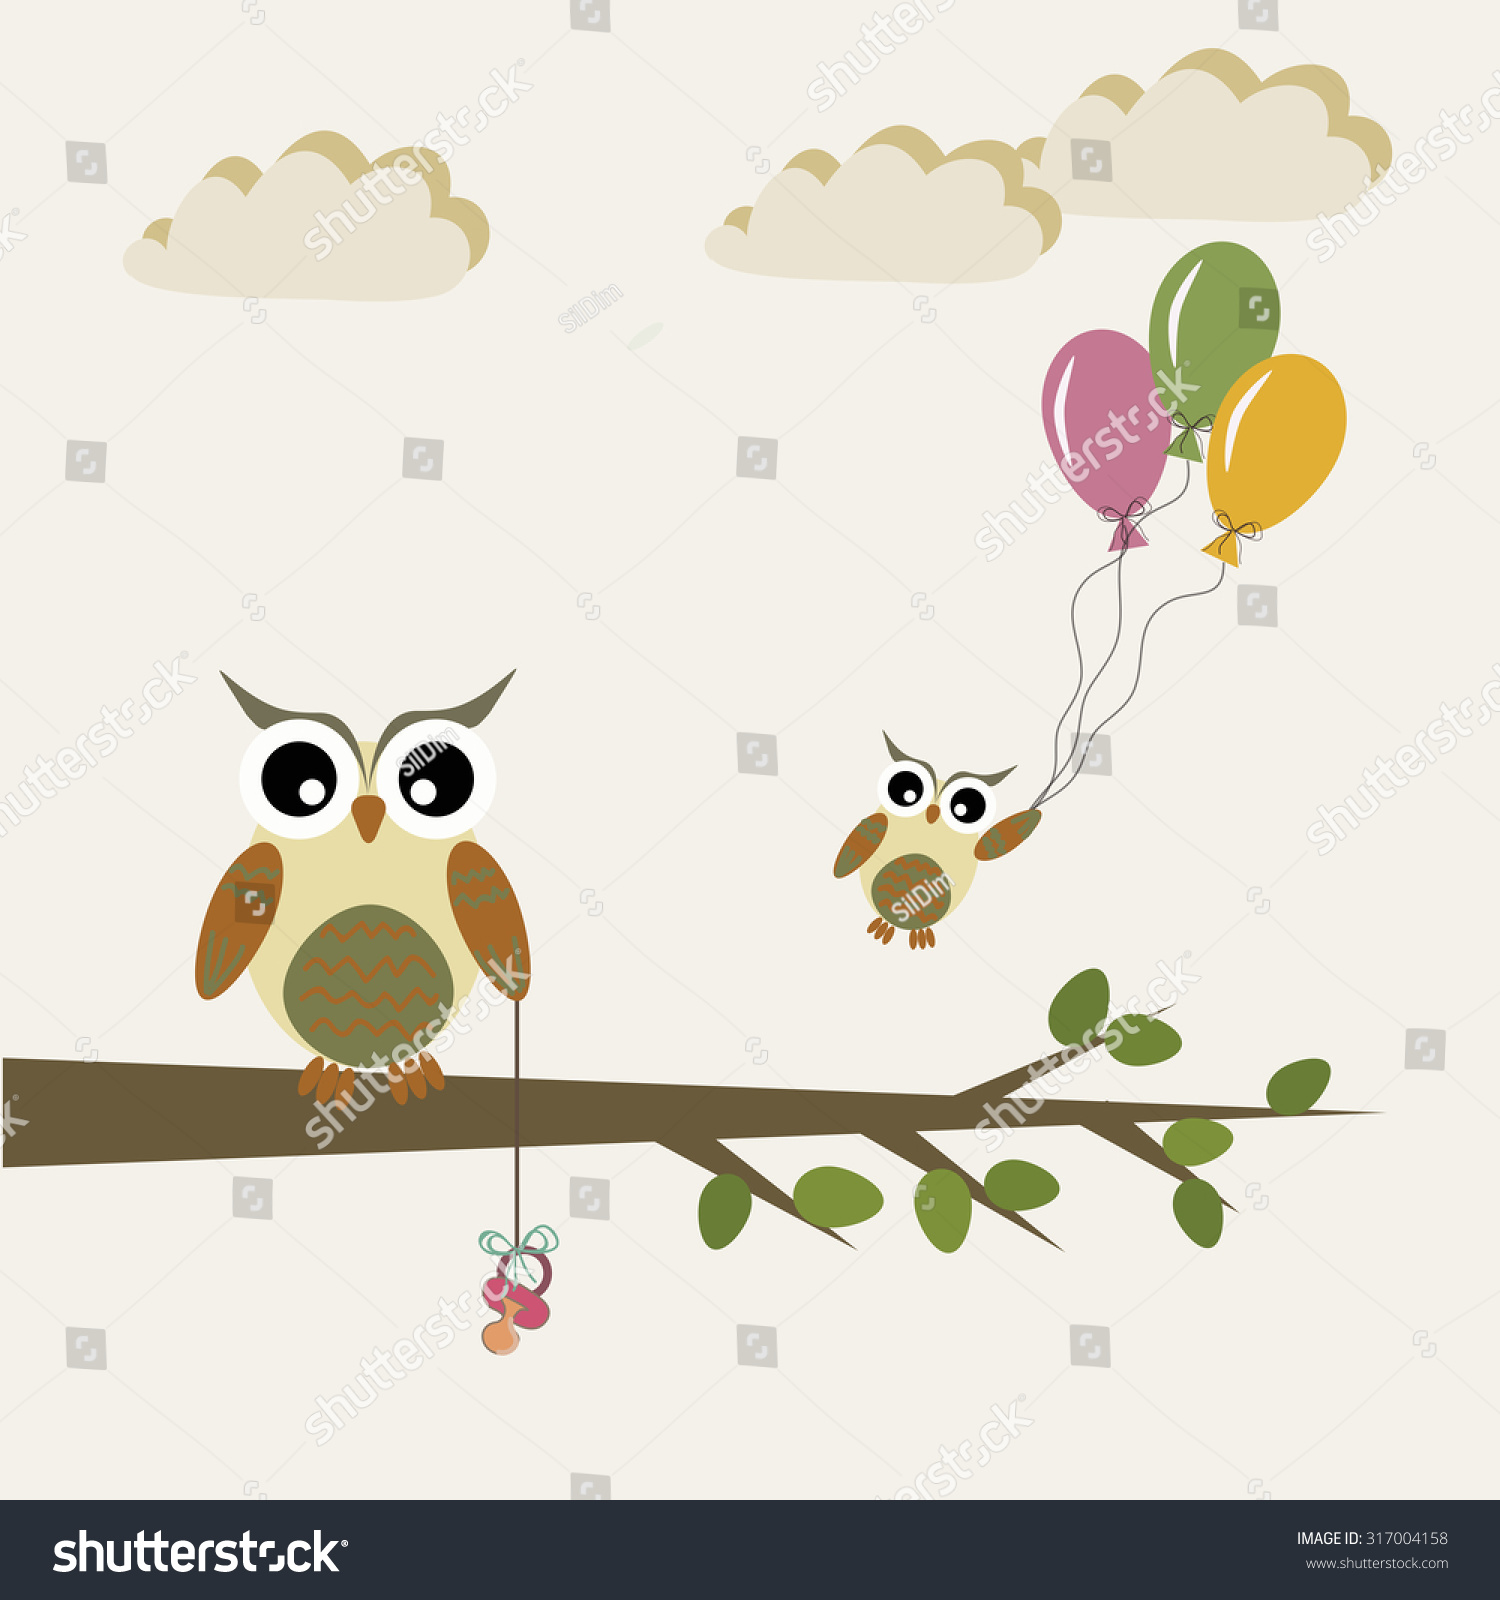 Baby Announcement Card Shower Design Elements With Cute Owls